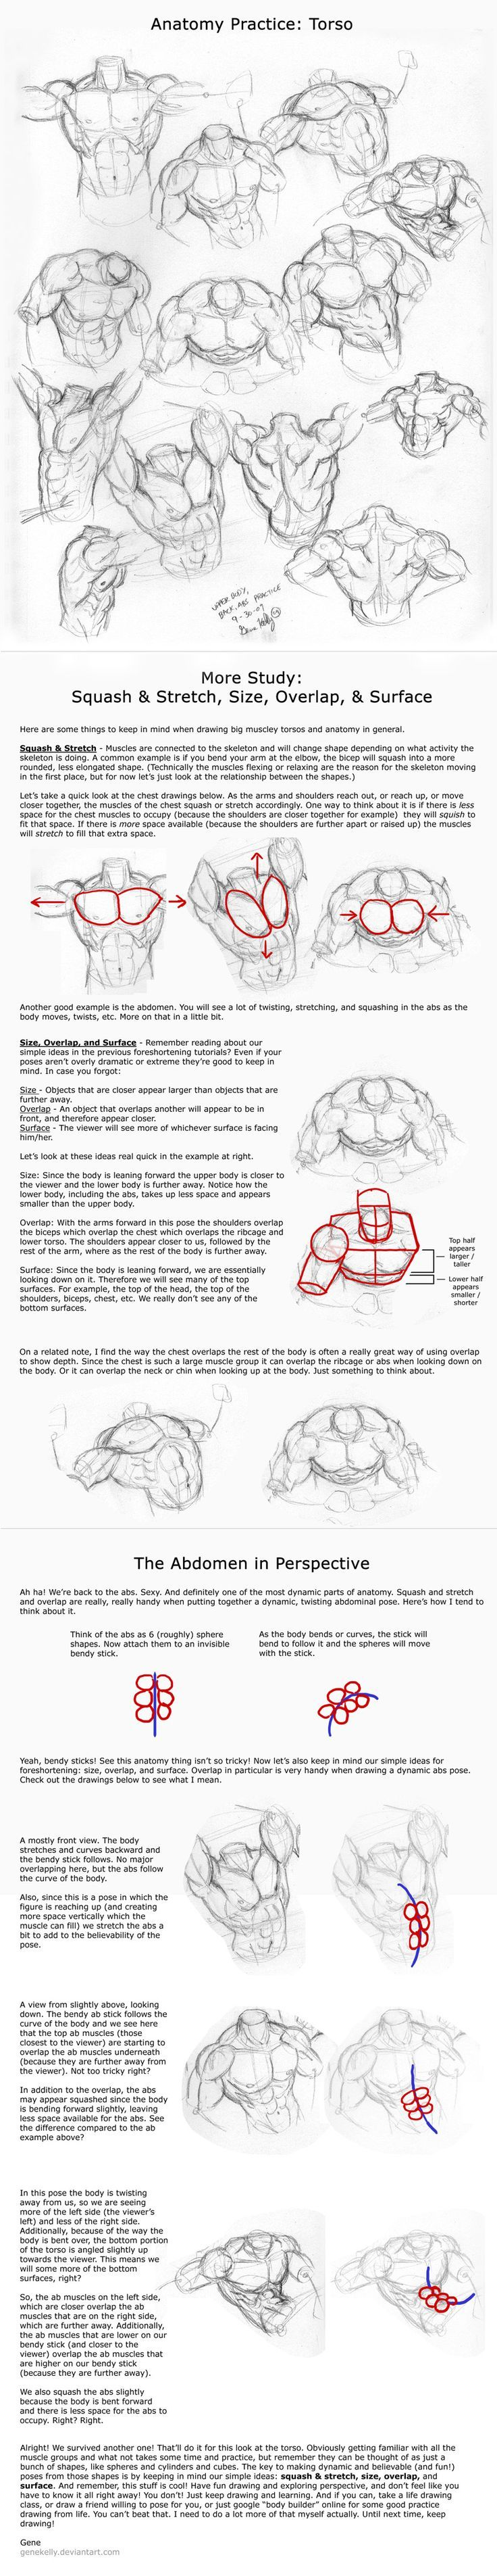 Wed 4: Torso Practice n' Tips by genekelly.deviantart.com on @deviantART join us http://pinterest.com/koztar/ https://itunes.apple.com/us/app/draw-pad-pro-amazing-notepads/id483071025?mt=8&at=10laCC: